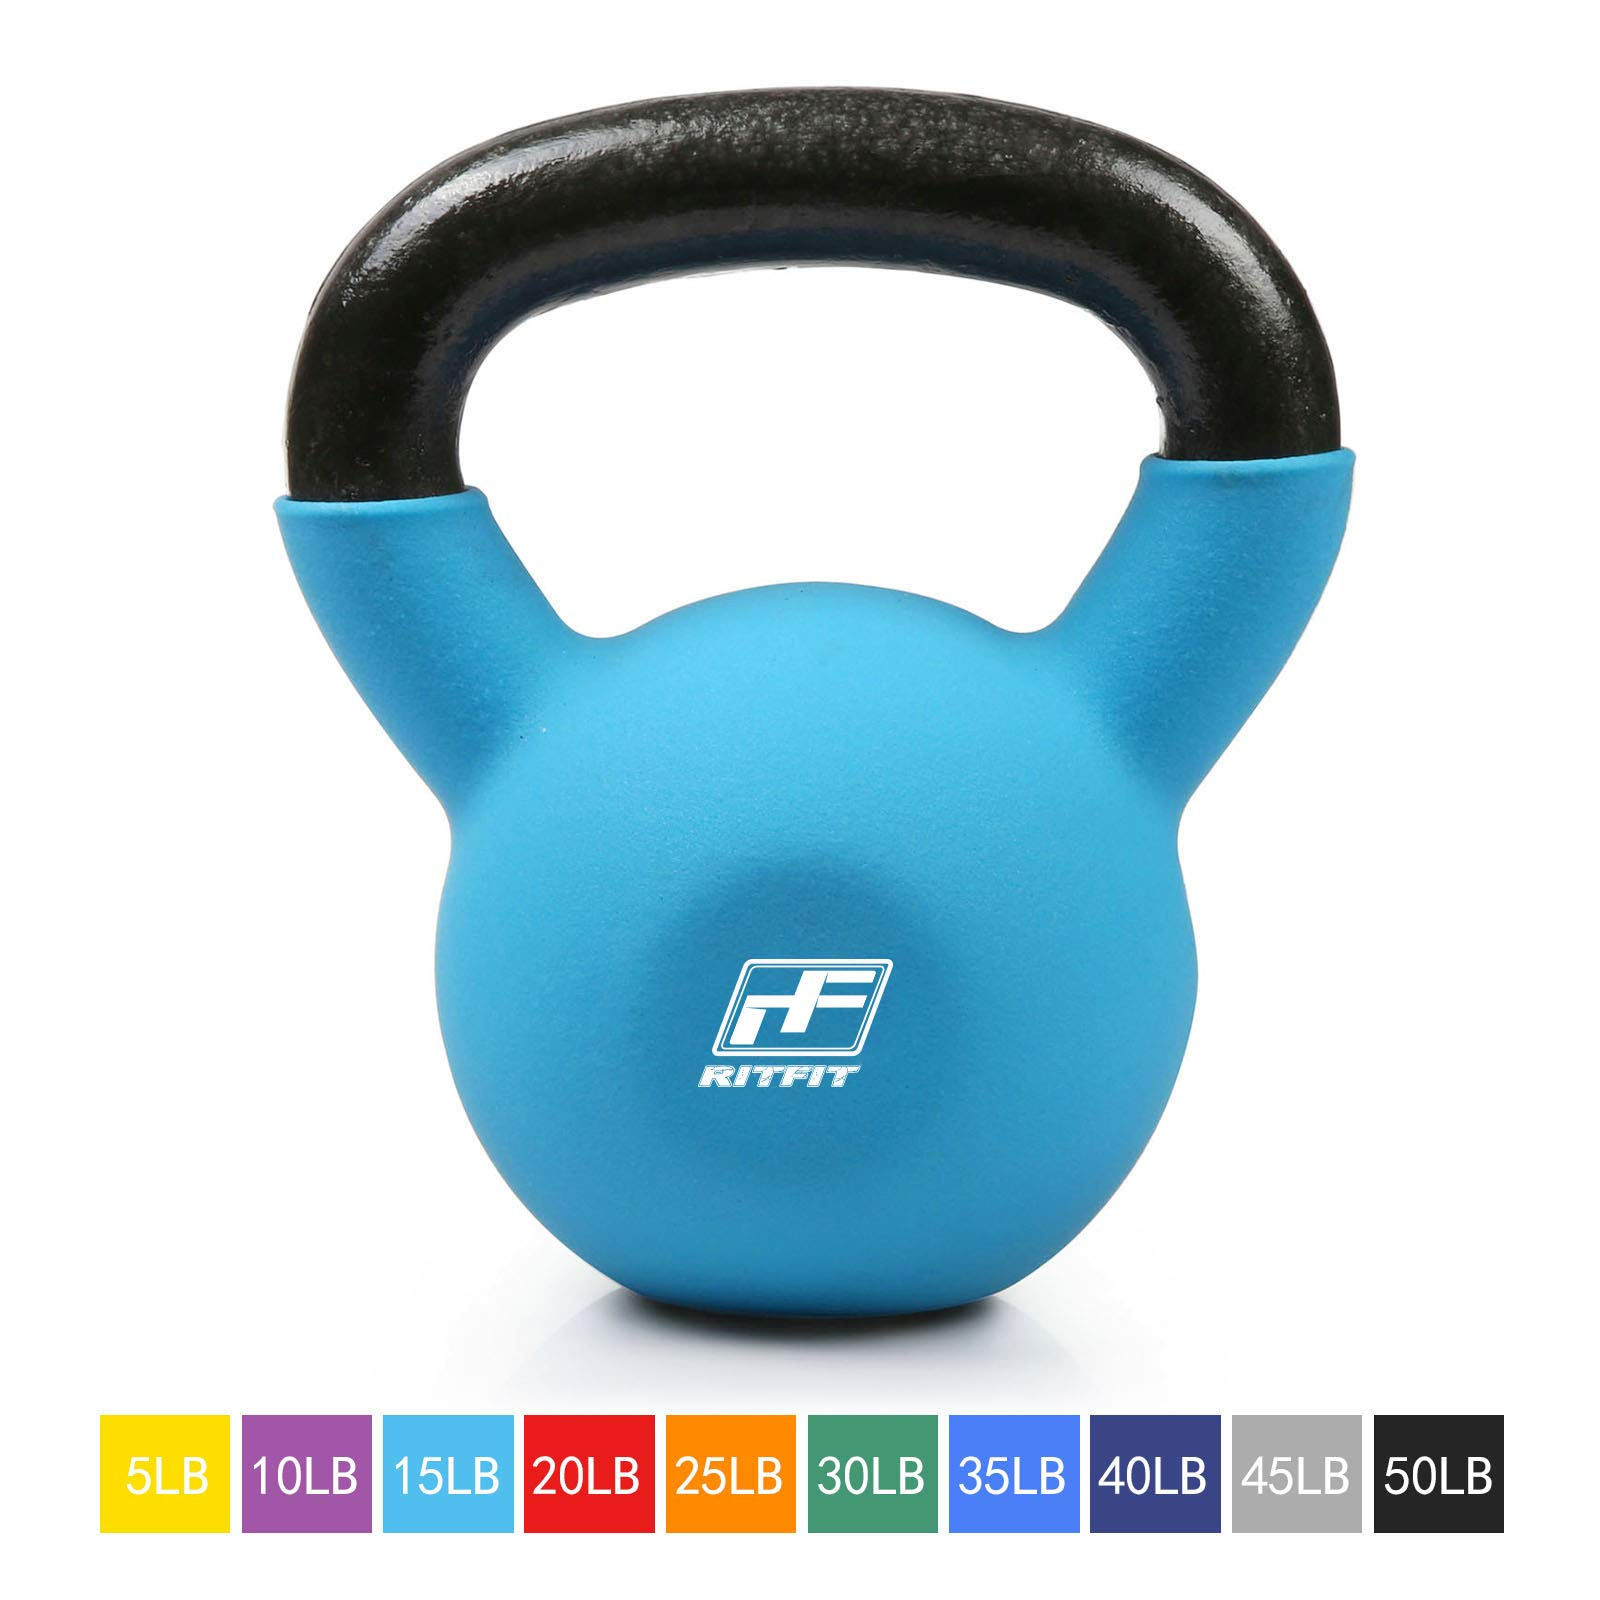 RitFit Neoprene Coated Solid Cast Iron Kettlebell - Great for Full Body Workout, Cross-Training, Weight Loss & Strength Training (5/10/15/20/25/30/35/40/45/50 LB) (15LB(Sky Blue))